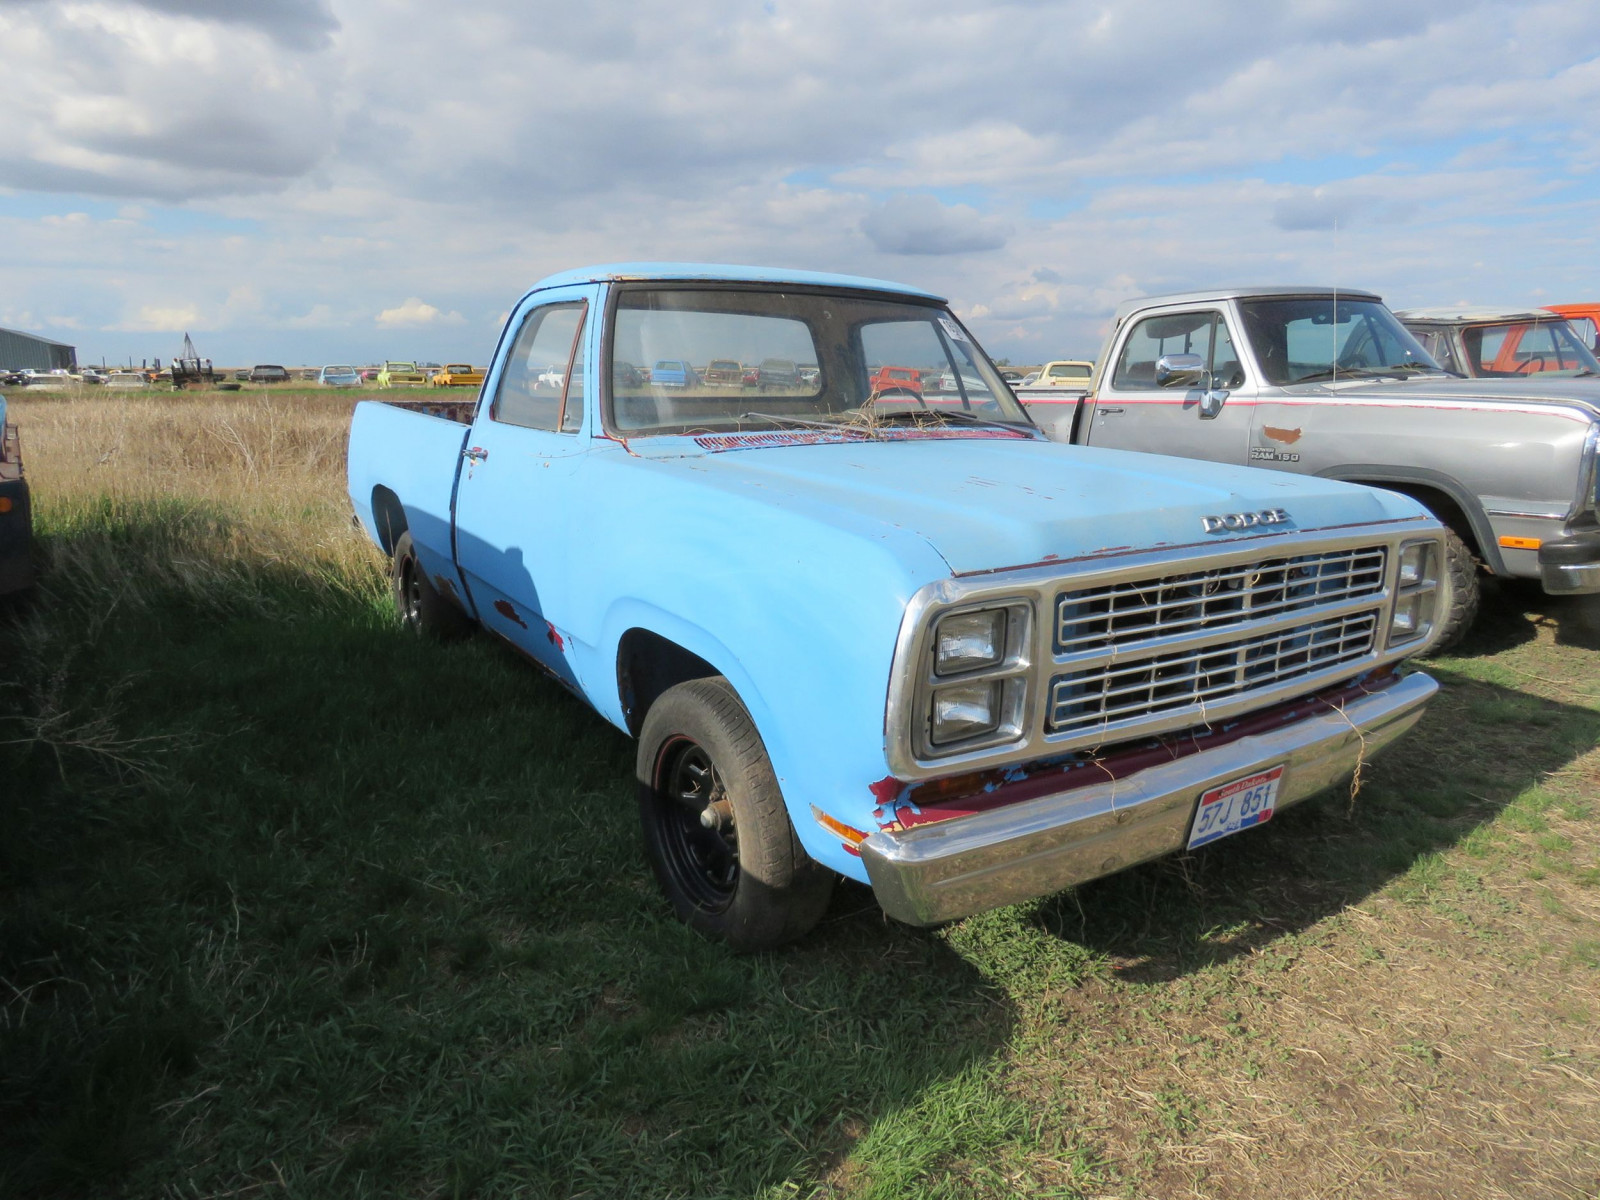 1979 Dodge Pickup - Image 2